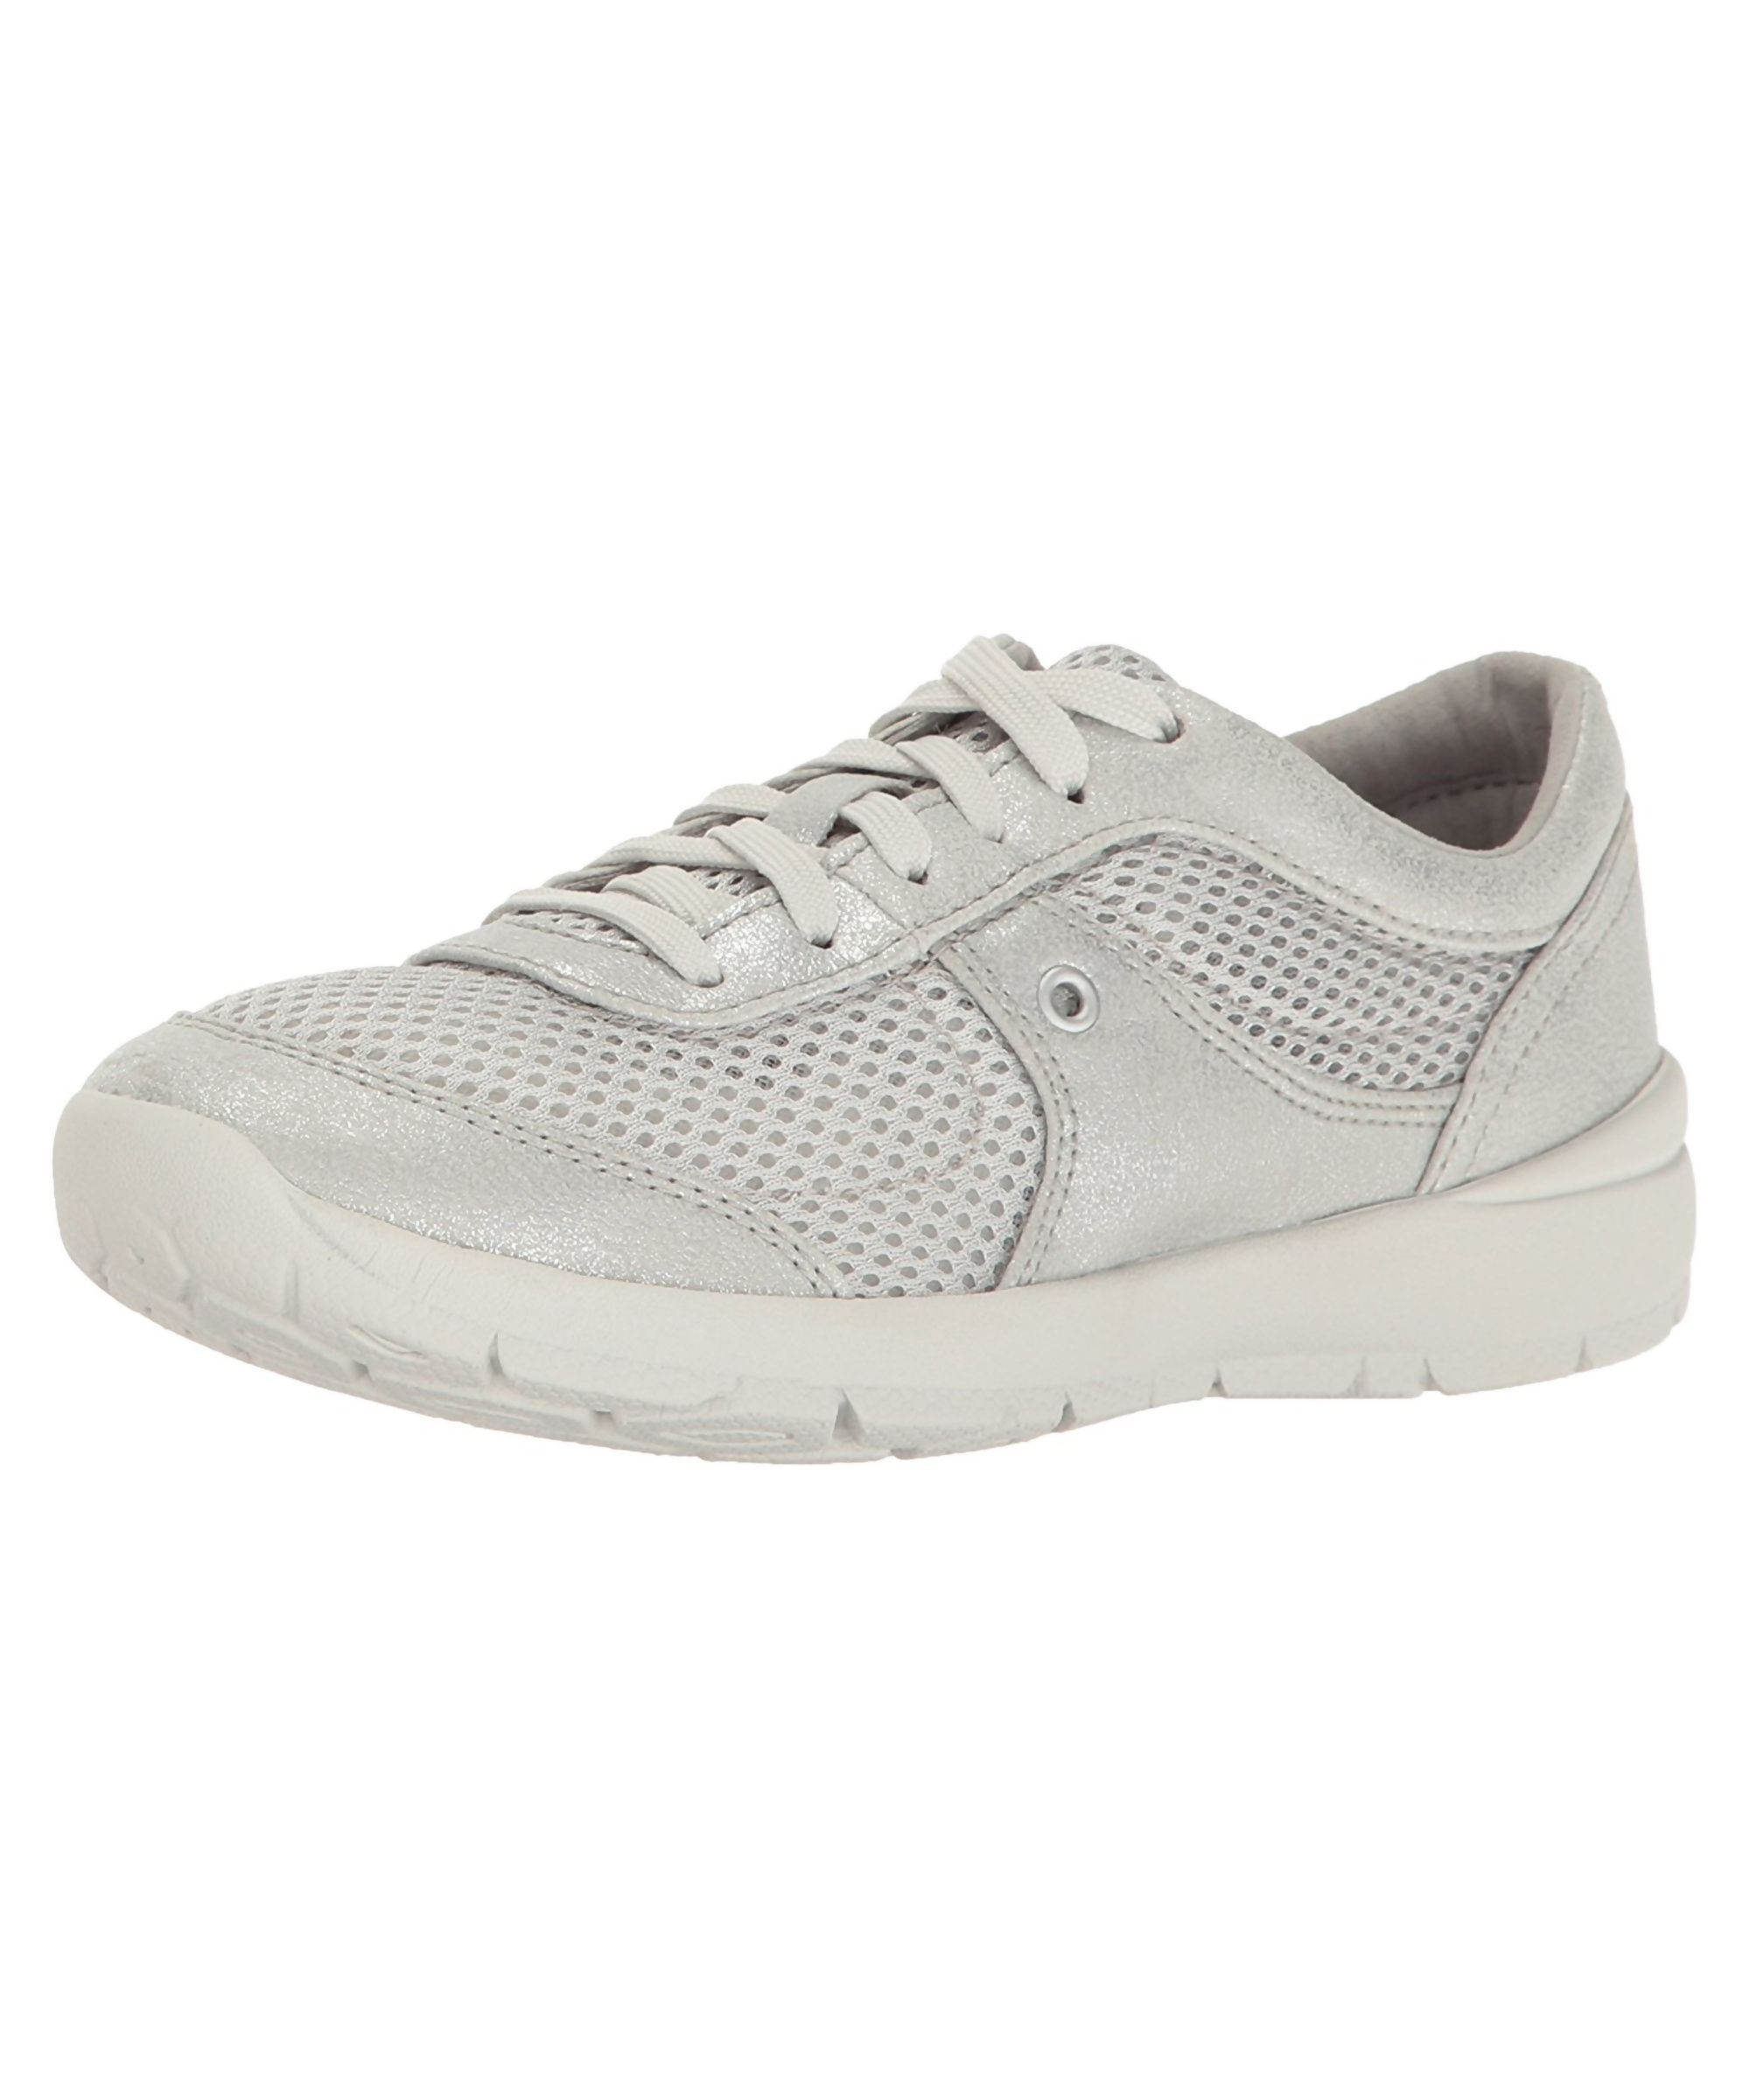 EASY SPIRIT | Easy Spirit Womens Gogo Low Top Lace Up Fashion Sneakers # Shoes #